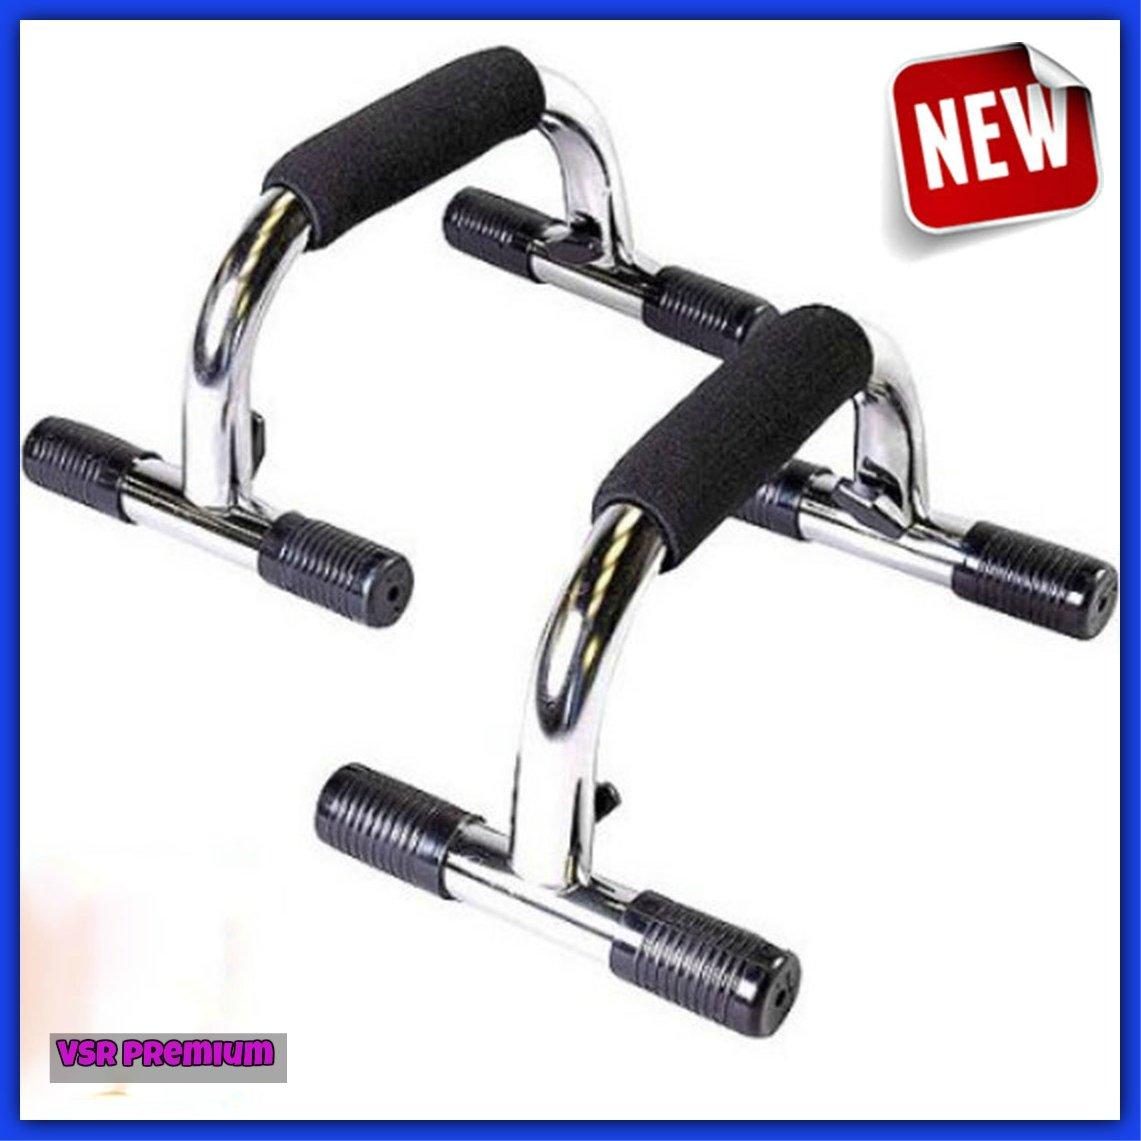 Pair Of Pushup Handles Stand Bars GYM Exercise For Men Women.Best Selling Workout Home Training Item.Strength Fitness Build Muscles & Good Health.Portable Steel & Easy to Use.!! by Pushup Exercise